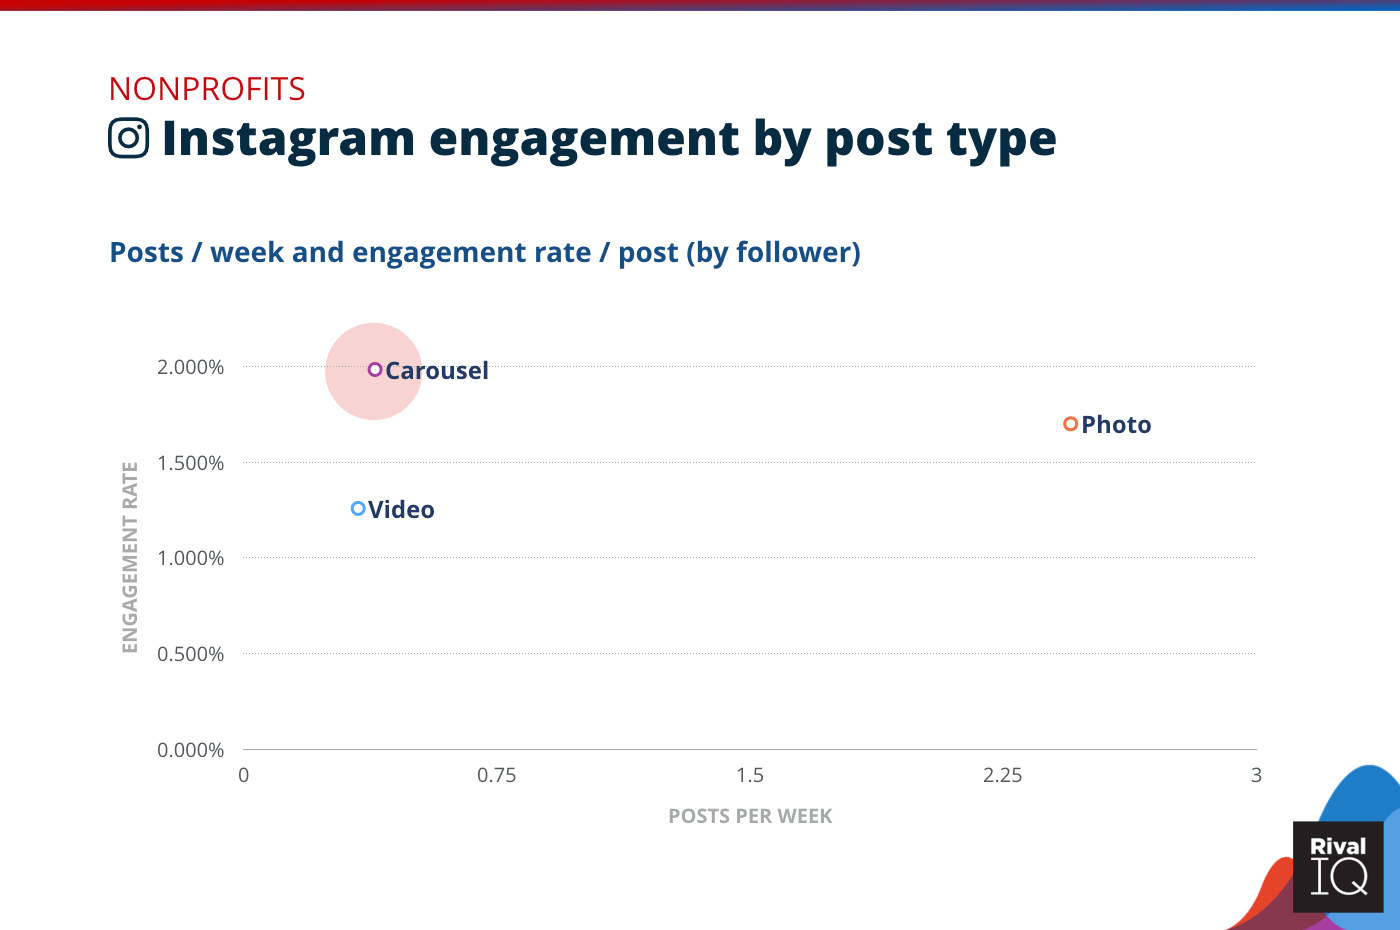 Chart of Instagram posts per week and engagement rate by post type, Nonprofits